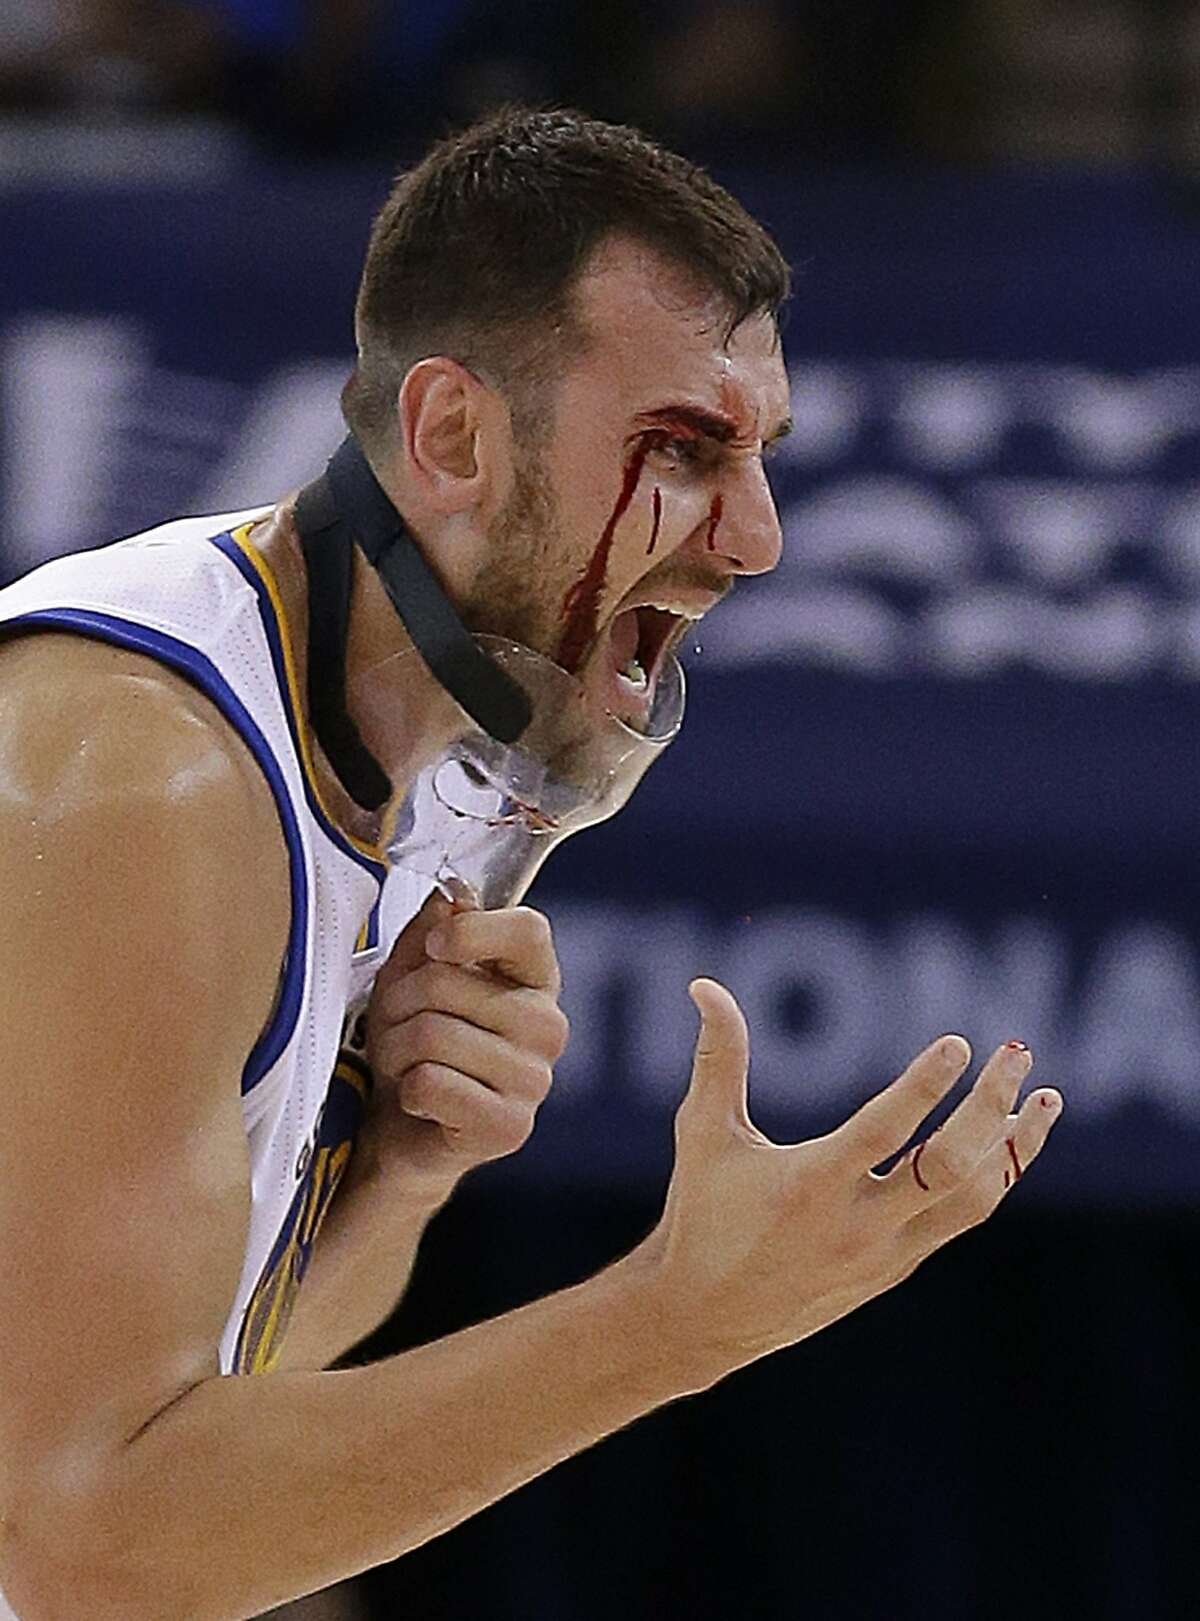 OCT. 27, 2015: WARRIORS 111, PELICANS 95 WARRIORS 1-0 Golden State Warriors' Andrew Bogut removes his protective mask after receiving a laceration near his eye during the second half of an NBA basketball game against the New Orleans Pelicans on Tuesday, Oct. 27, 2015, in Oakland, Calif. Bogut required stitches to close the wound. (AP Photo/Ben Margot)